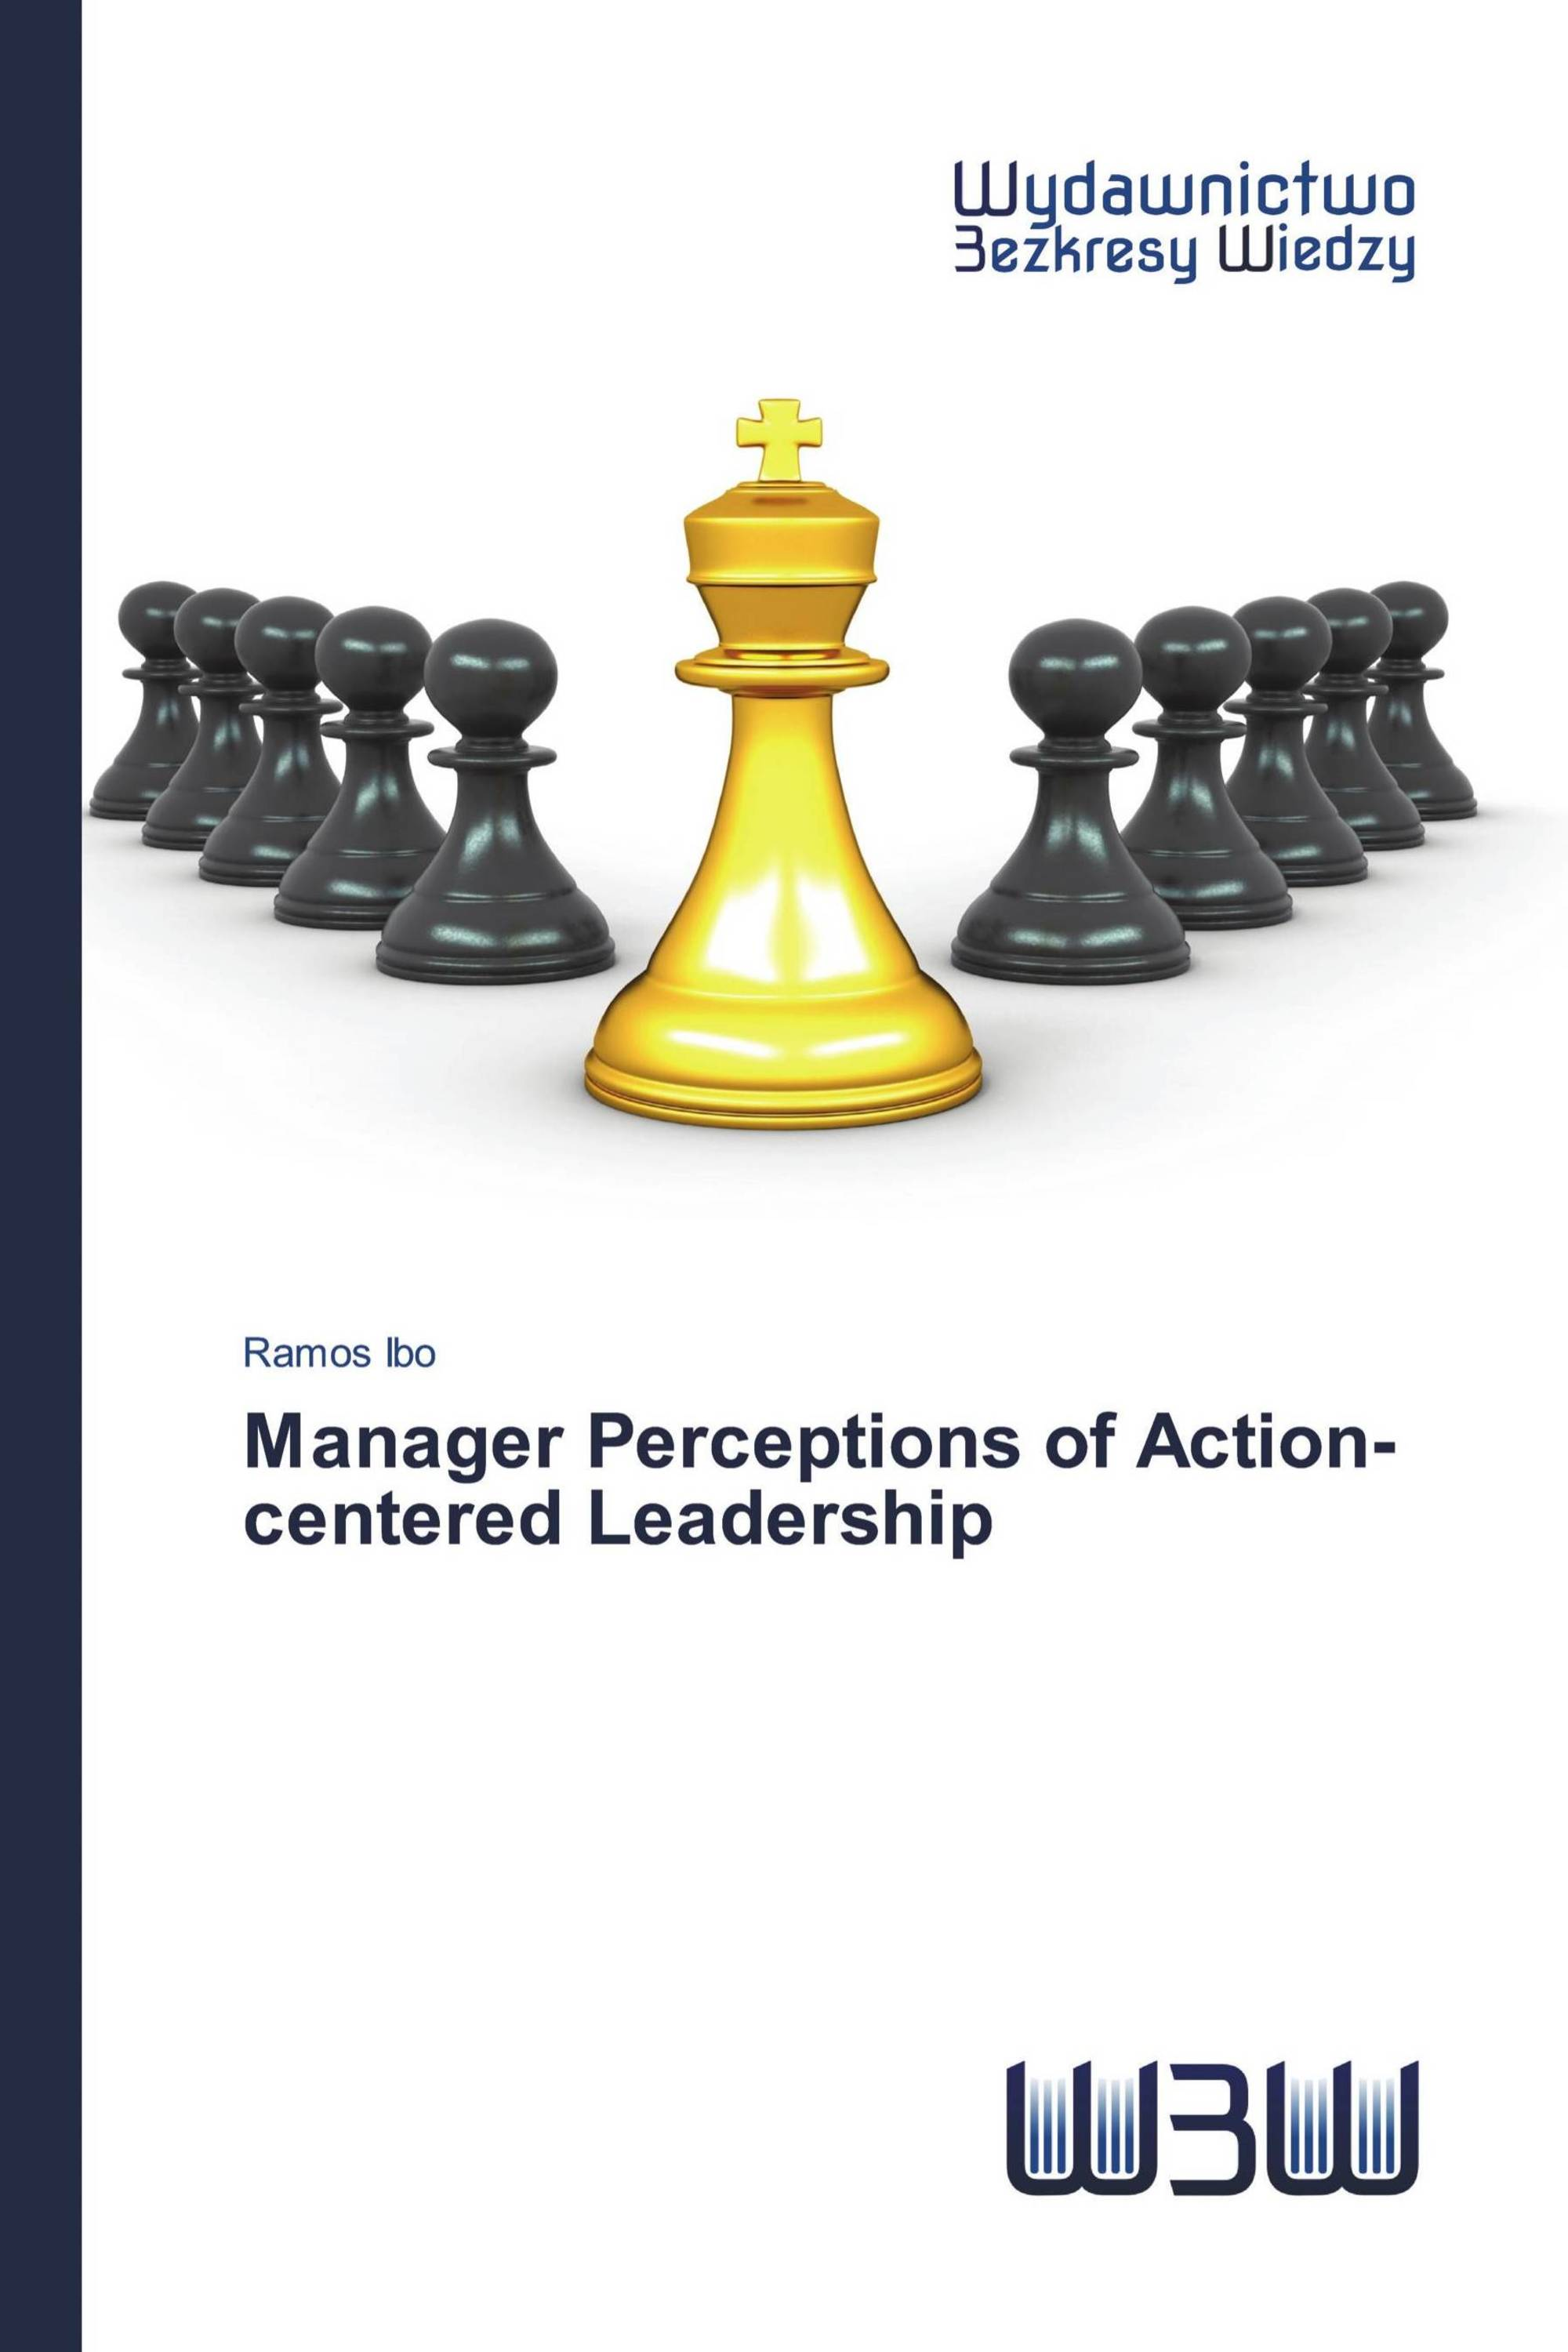 Manager Perceptions of Action-centered Leadership